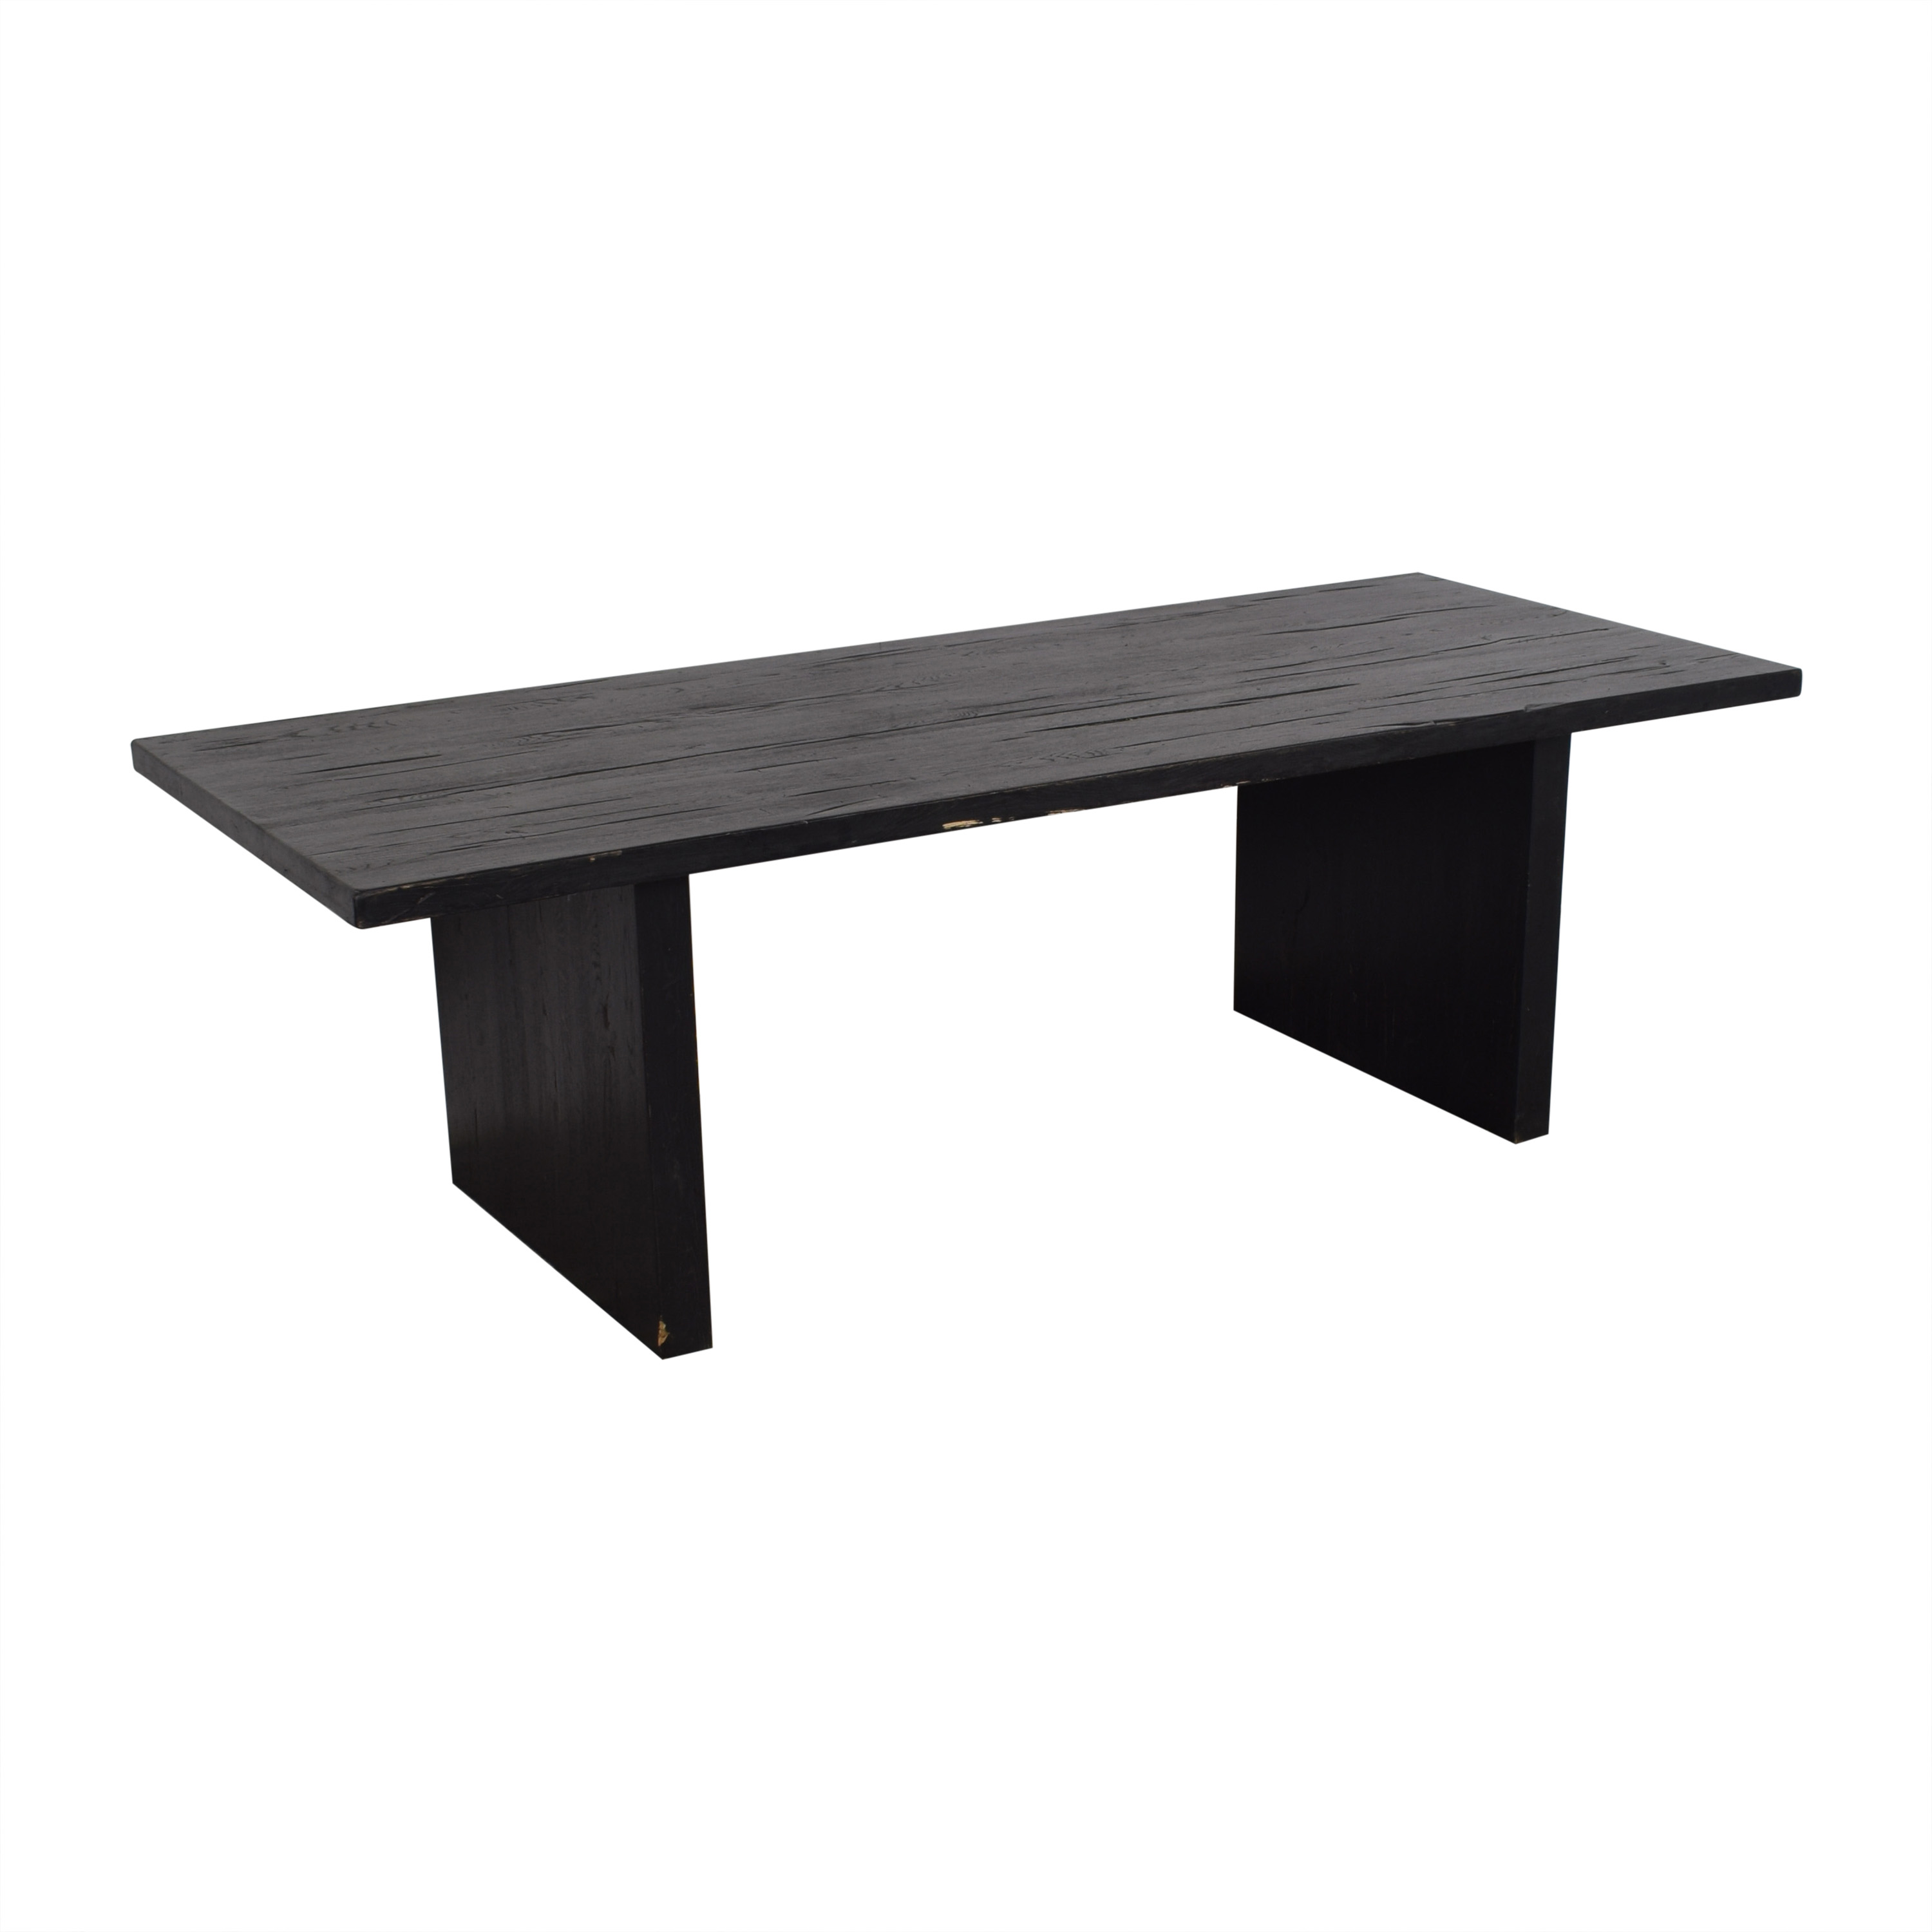 Restoration Hardware Plank Rectangular Dining Table / Tables